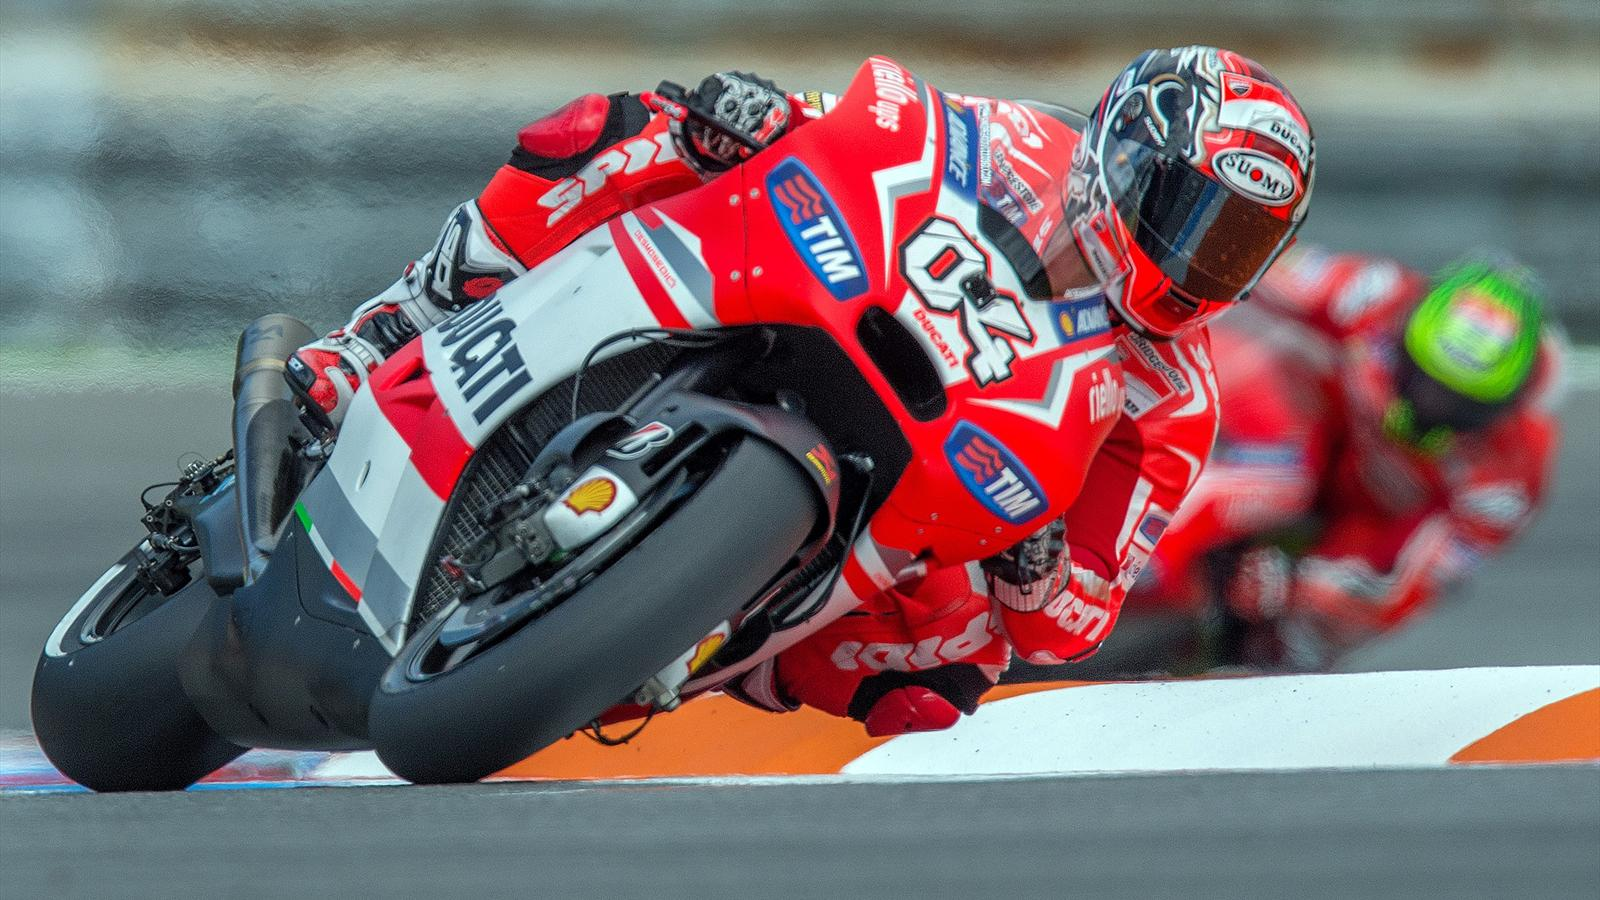 motogp grand prix du qatar andrea dovizioso ducati en position de pointe grand prix du. Black Bedroom Furniture Sets. Home Design Ideas